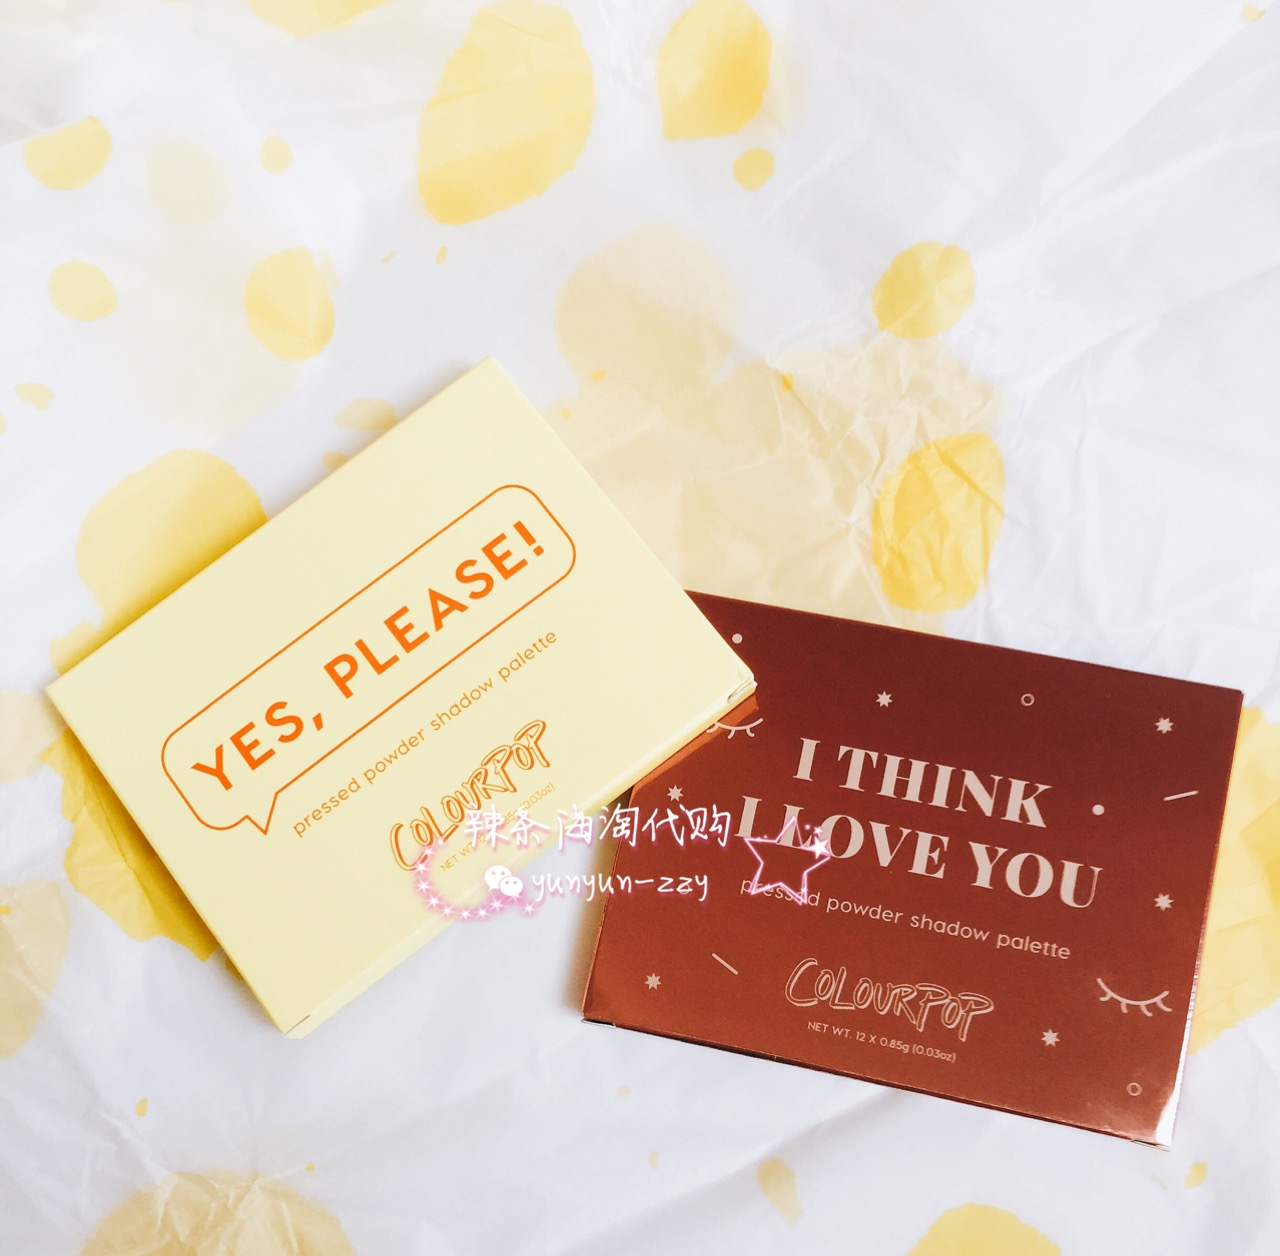 现货Colourpop卡拉泡泡眼影Yes Please日落 I think 玫瑰盘she